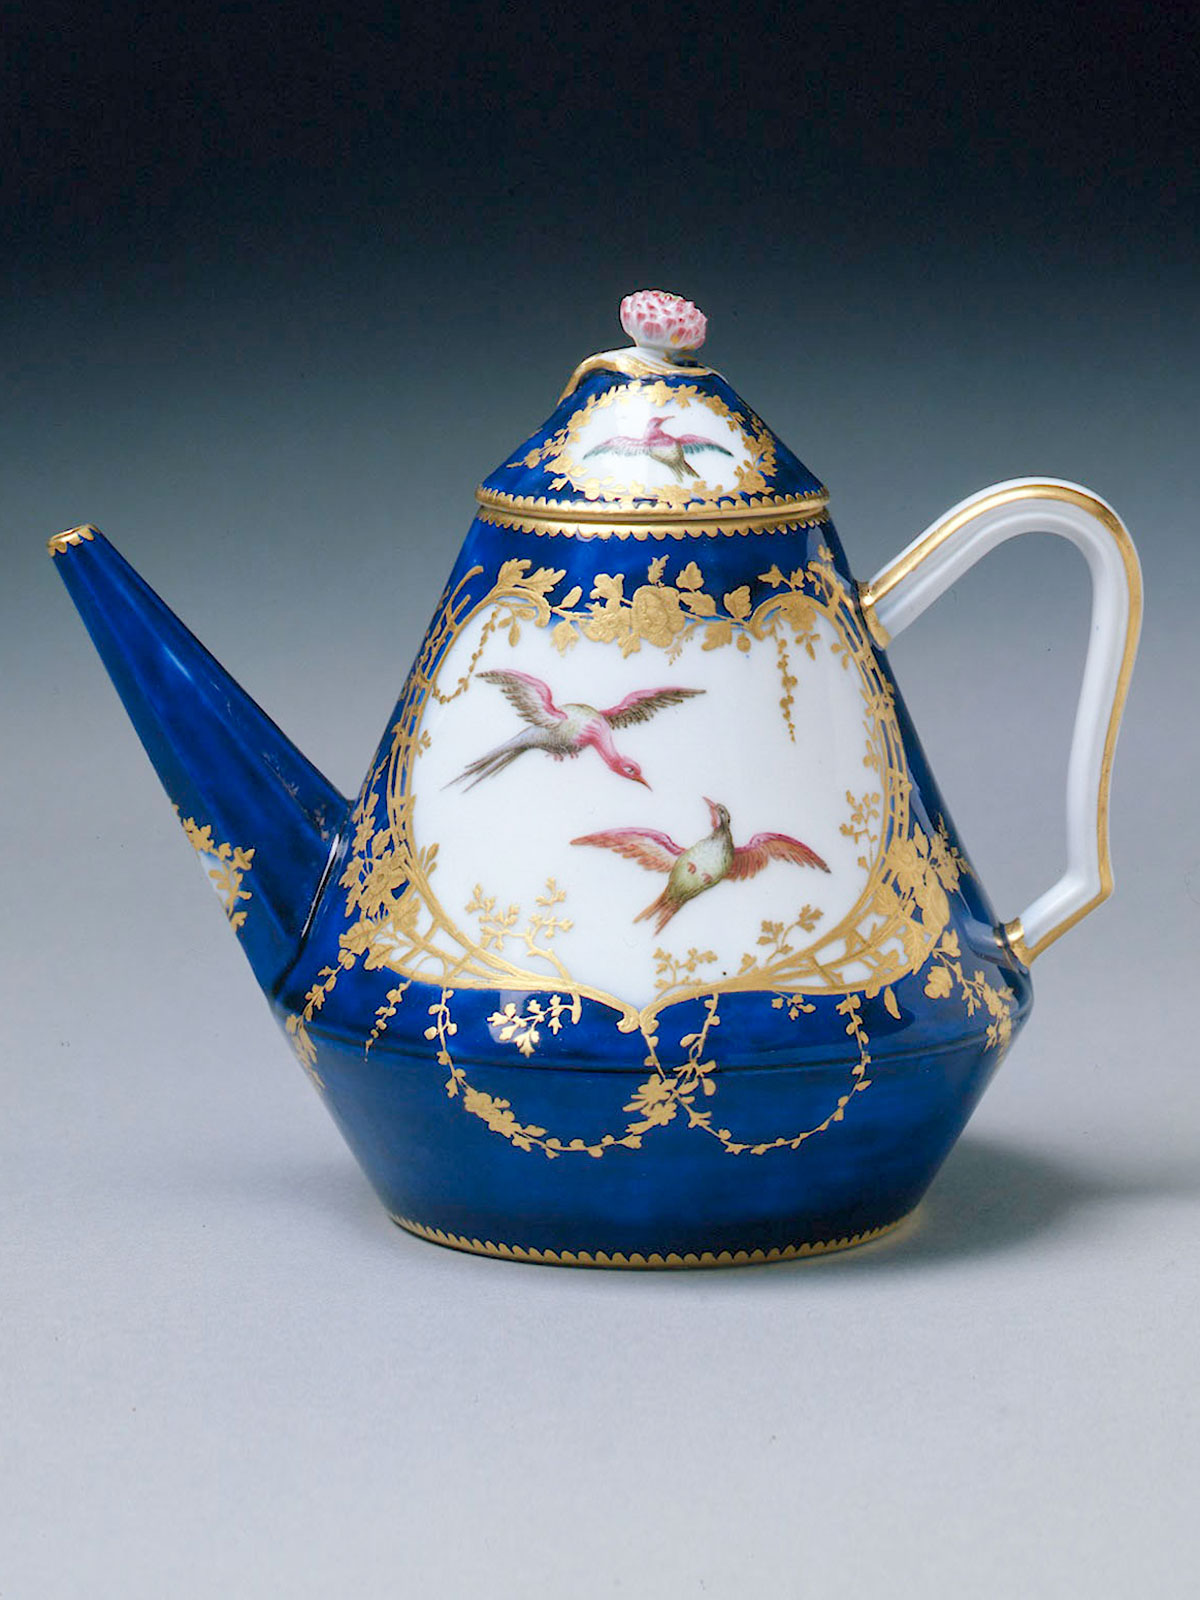 Vincennes Pyramid Shaped Teapot and Cover circa 1752